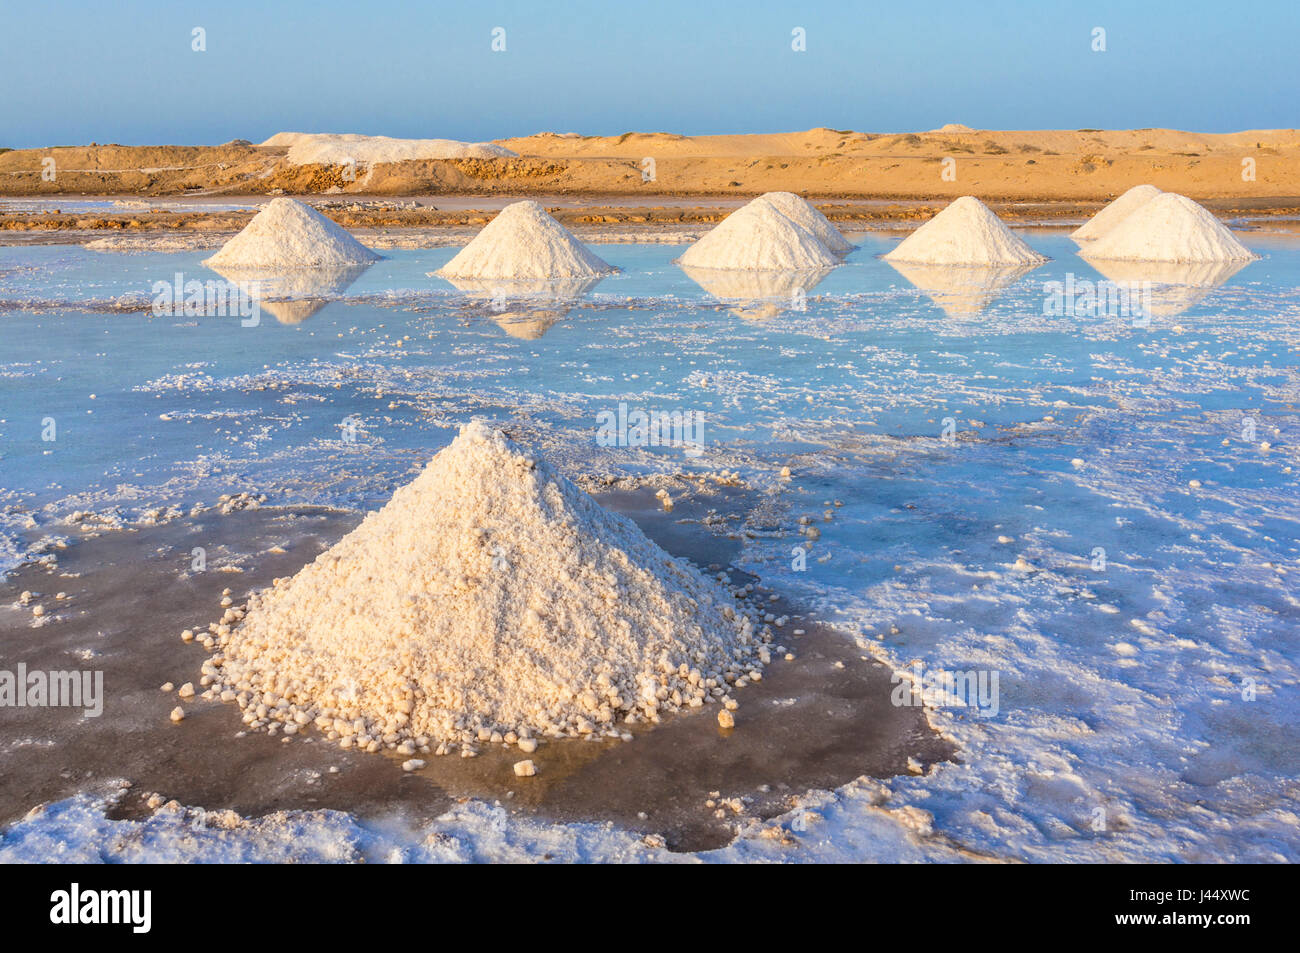 CAPE VERDE SAL Piles of salt collected from natural salt pans at Salinas, just outside Santa Maria, Sal island, - Stock Image